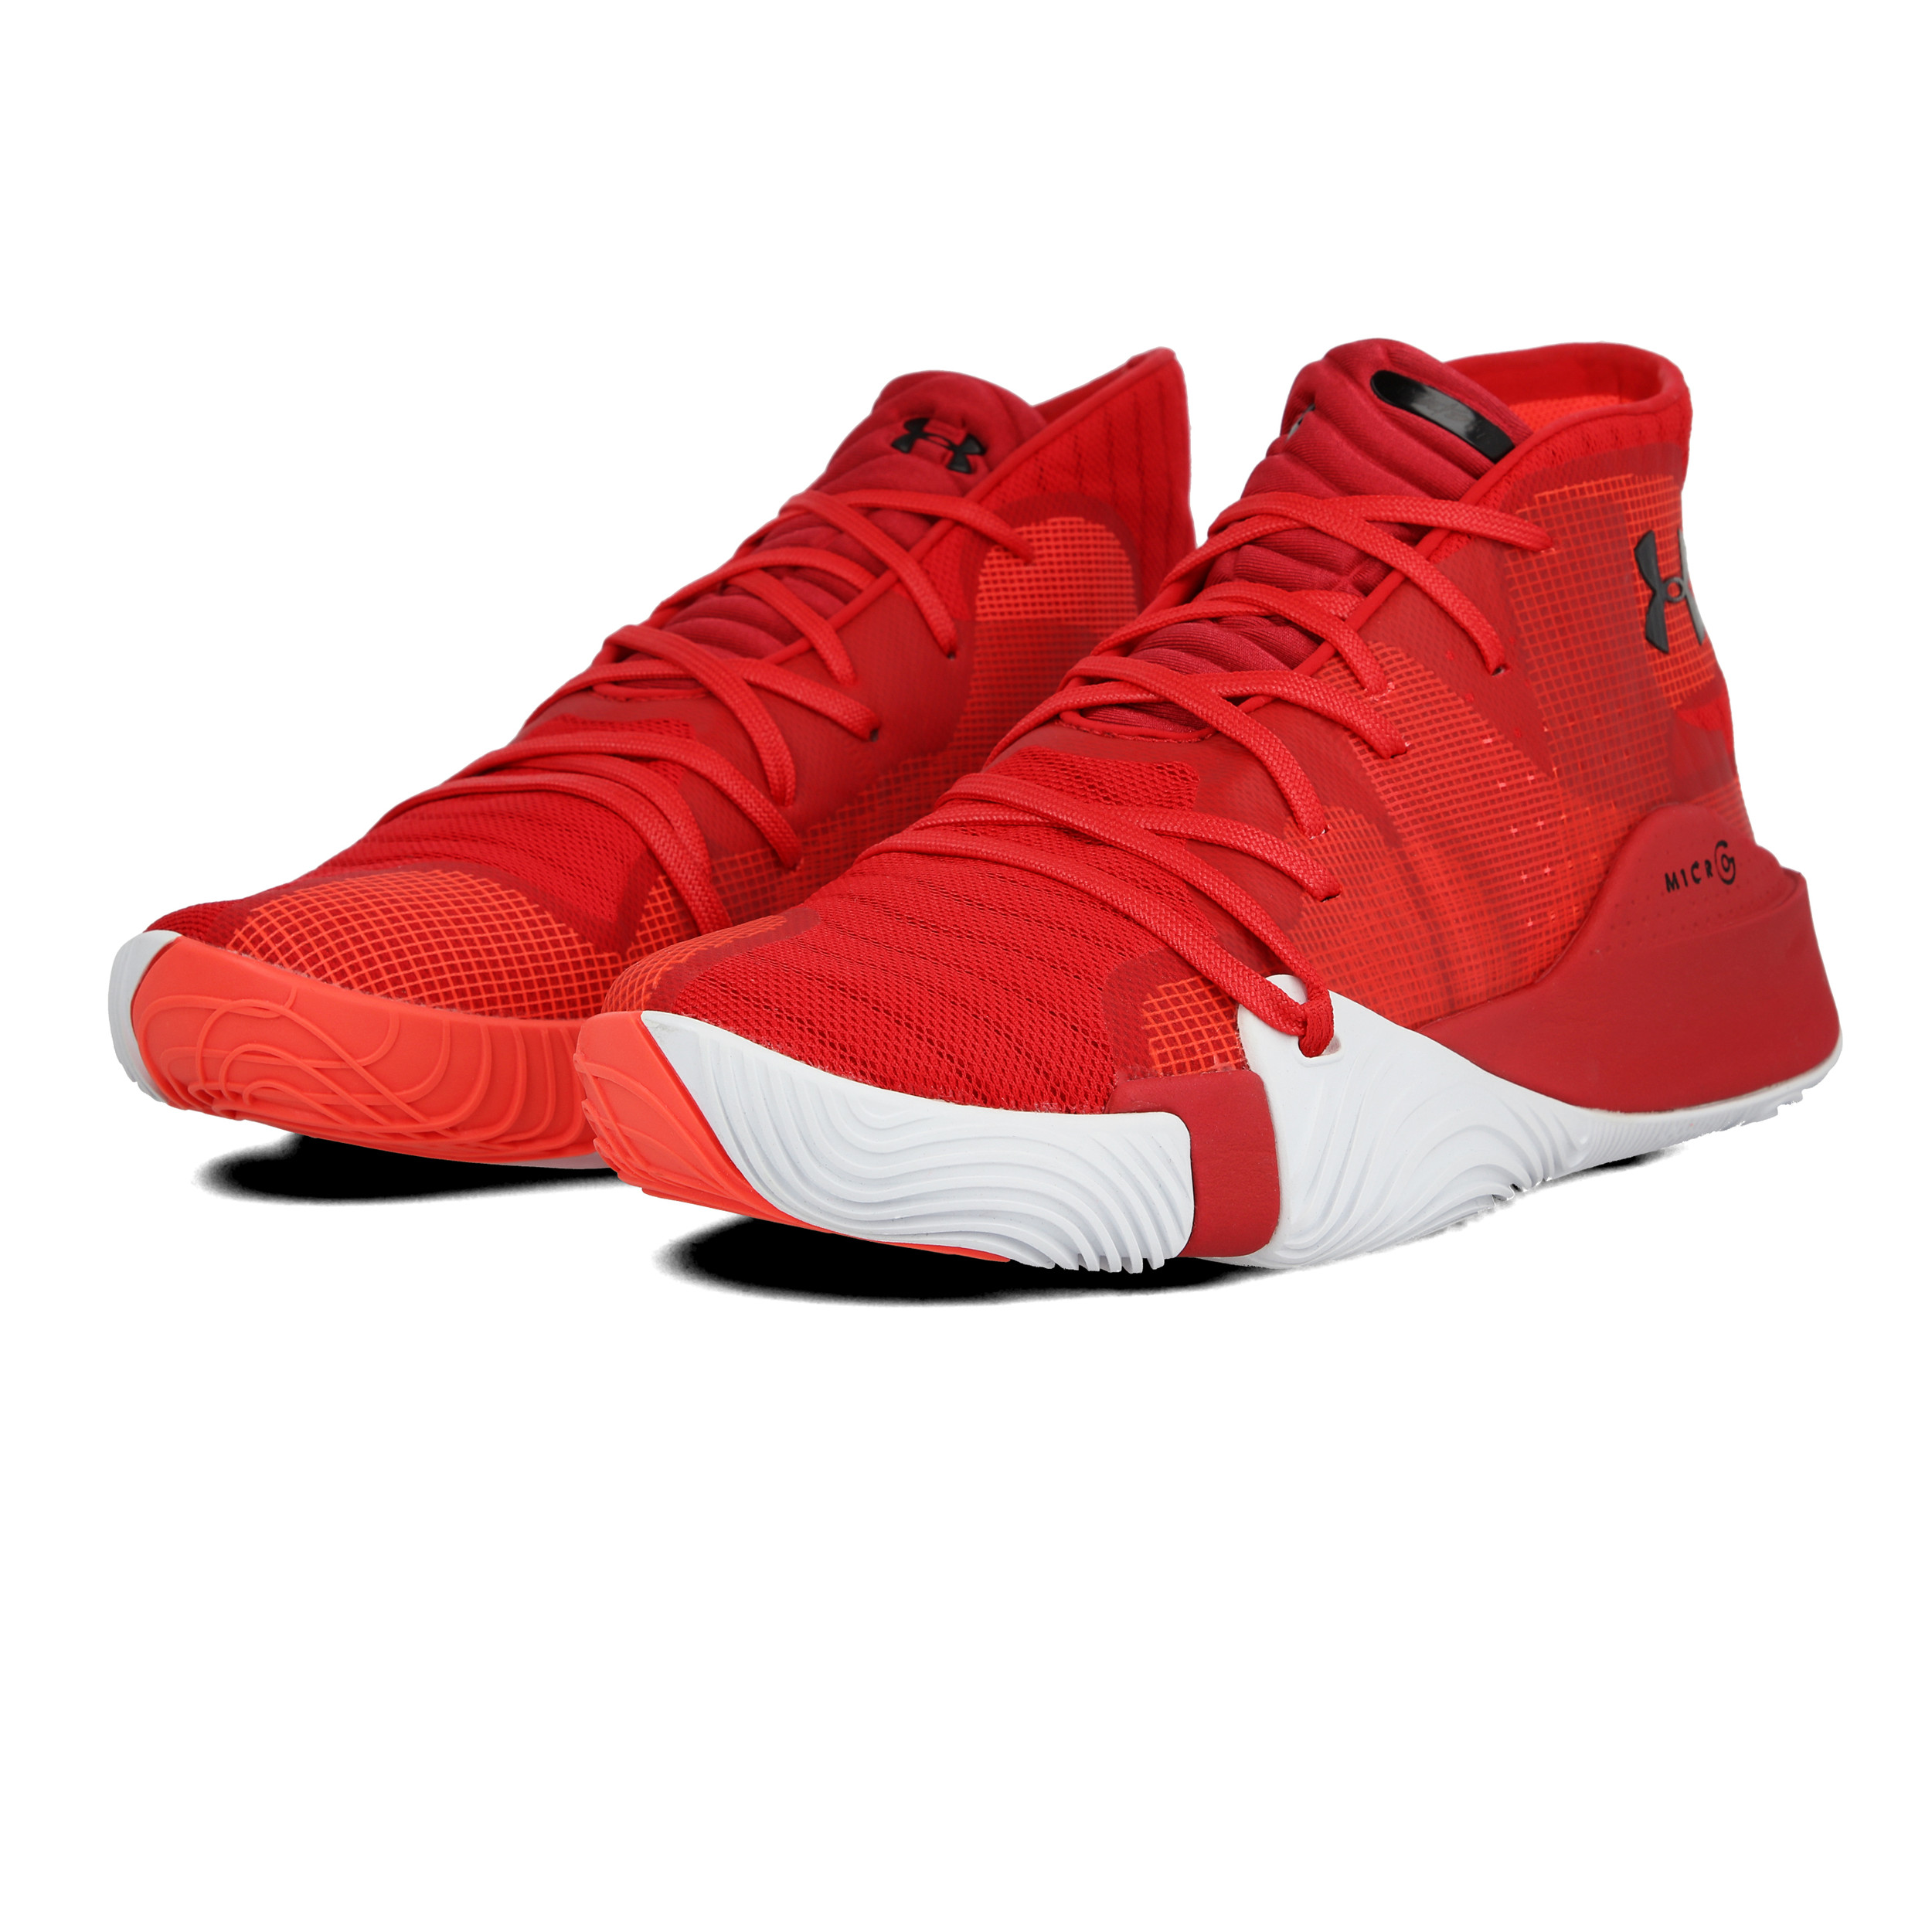 Under Armour Mens Spawn Mid Basketball Shoes Red Sports Brea